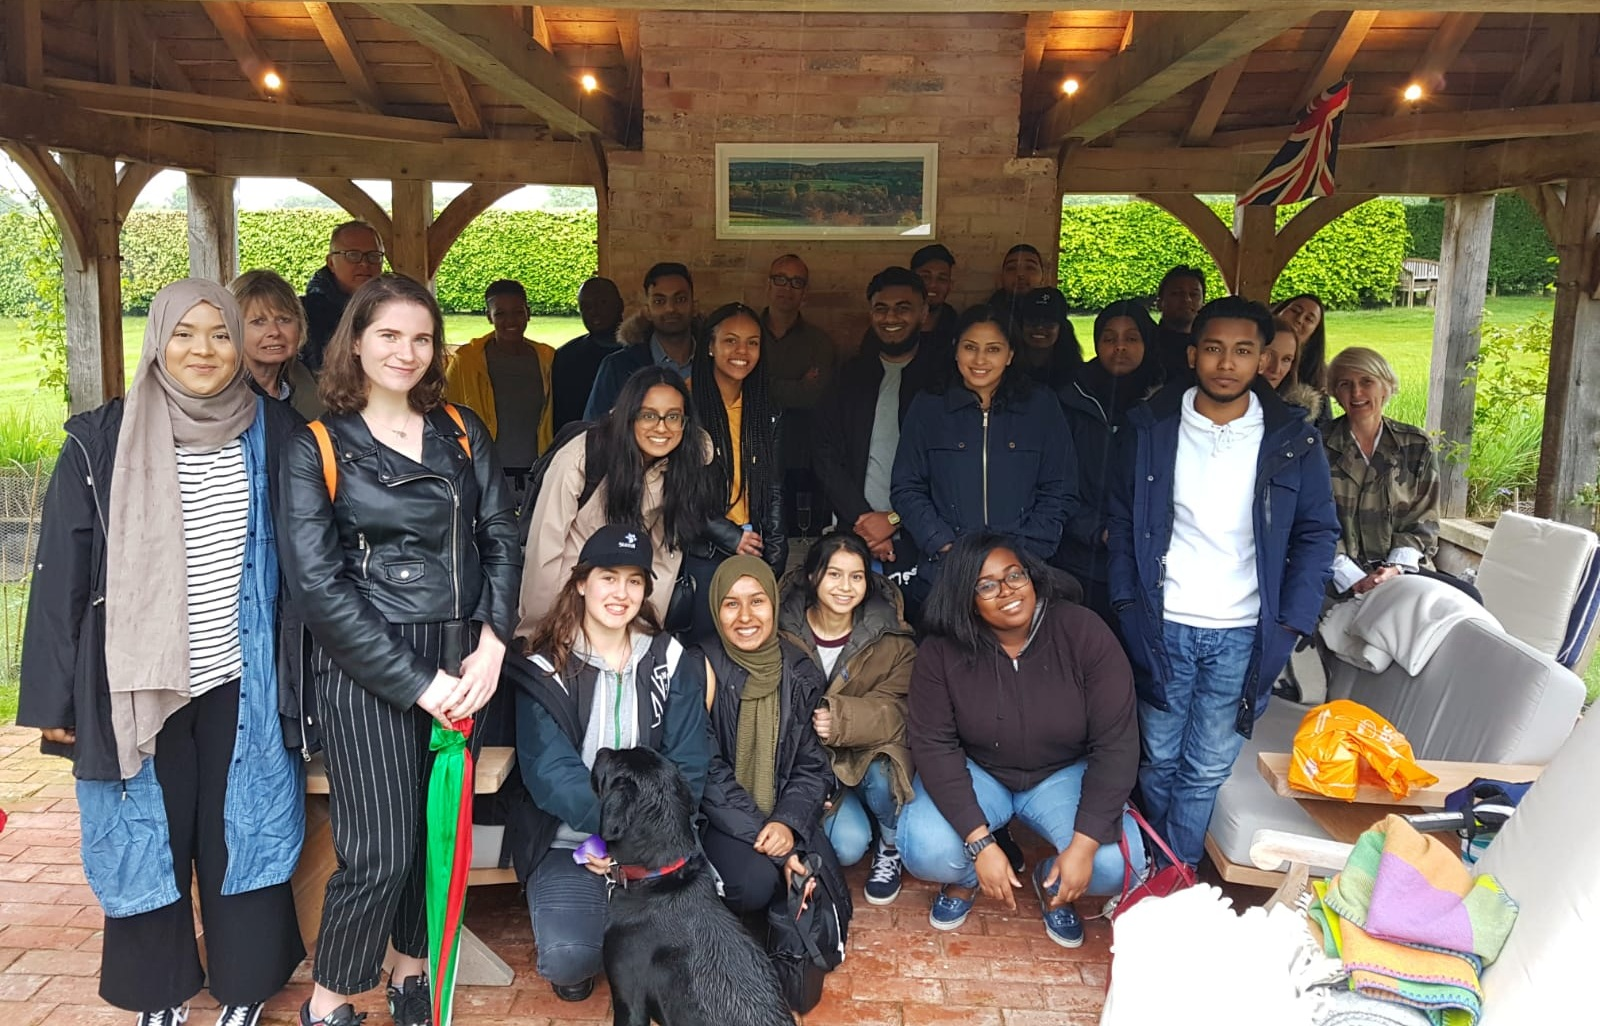 Summer Careers inspiration Barbecue day